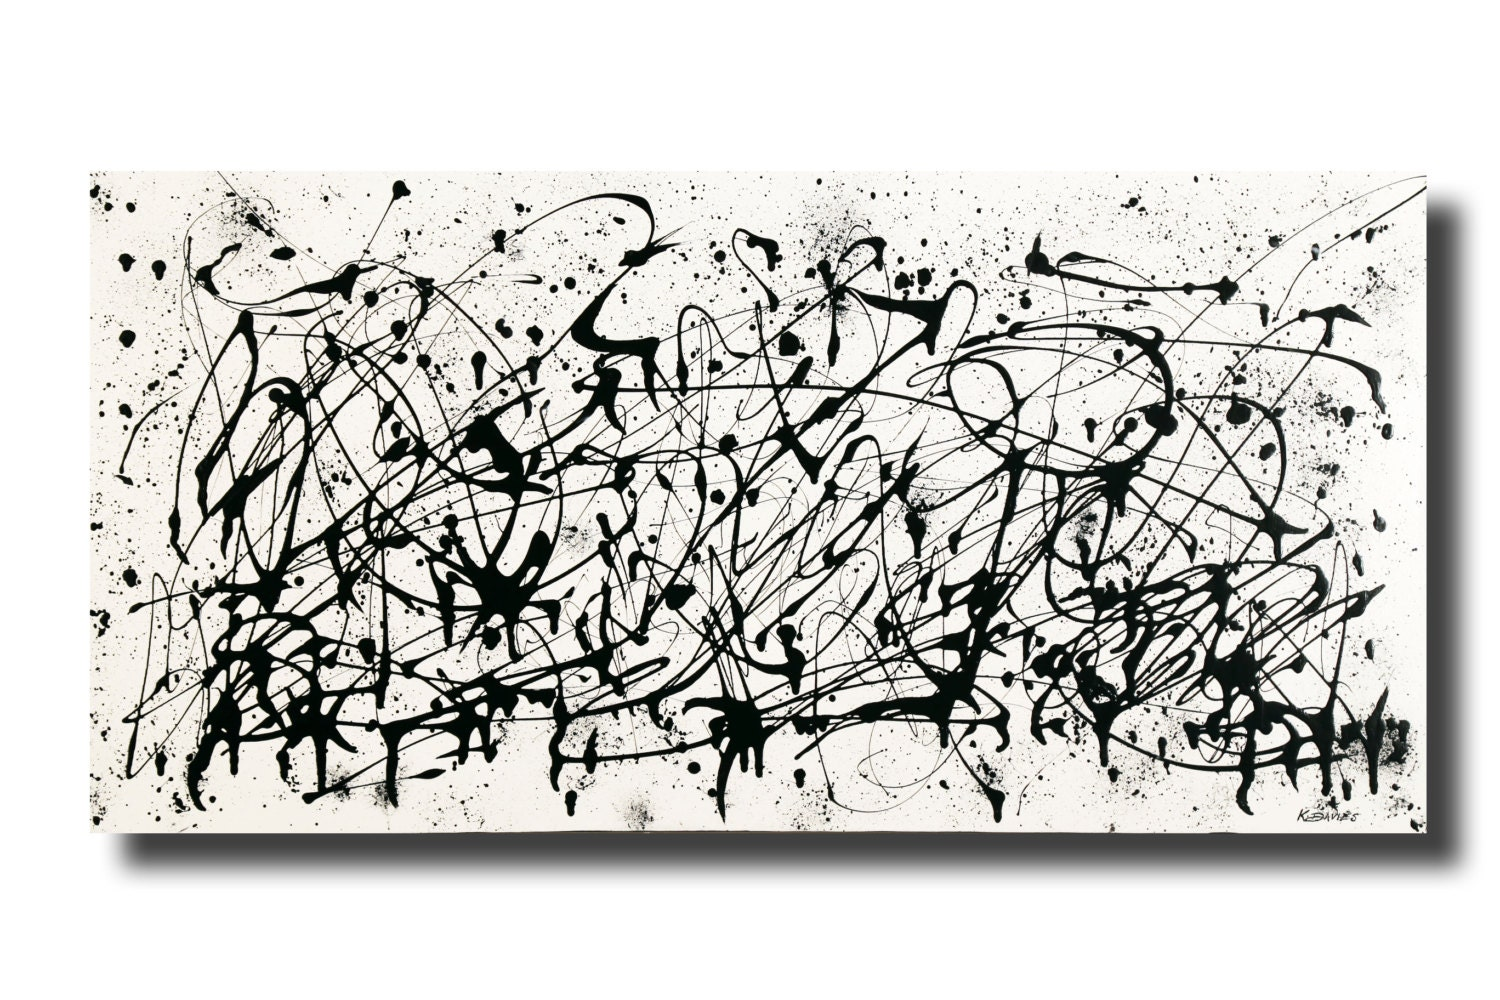 Large contemporary black white abstract painting 24x48 acrylic on gallery canvas 3016bw by k davies